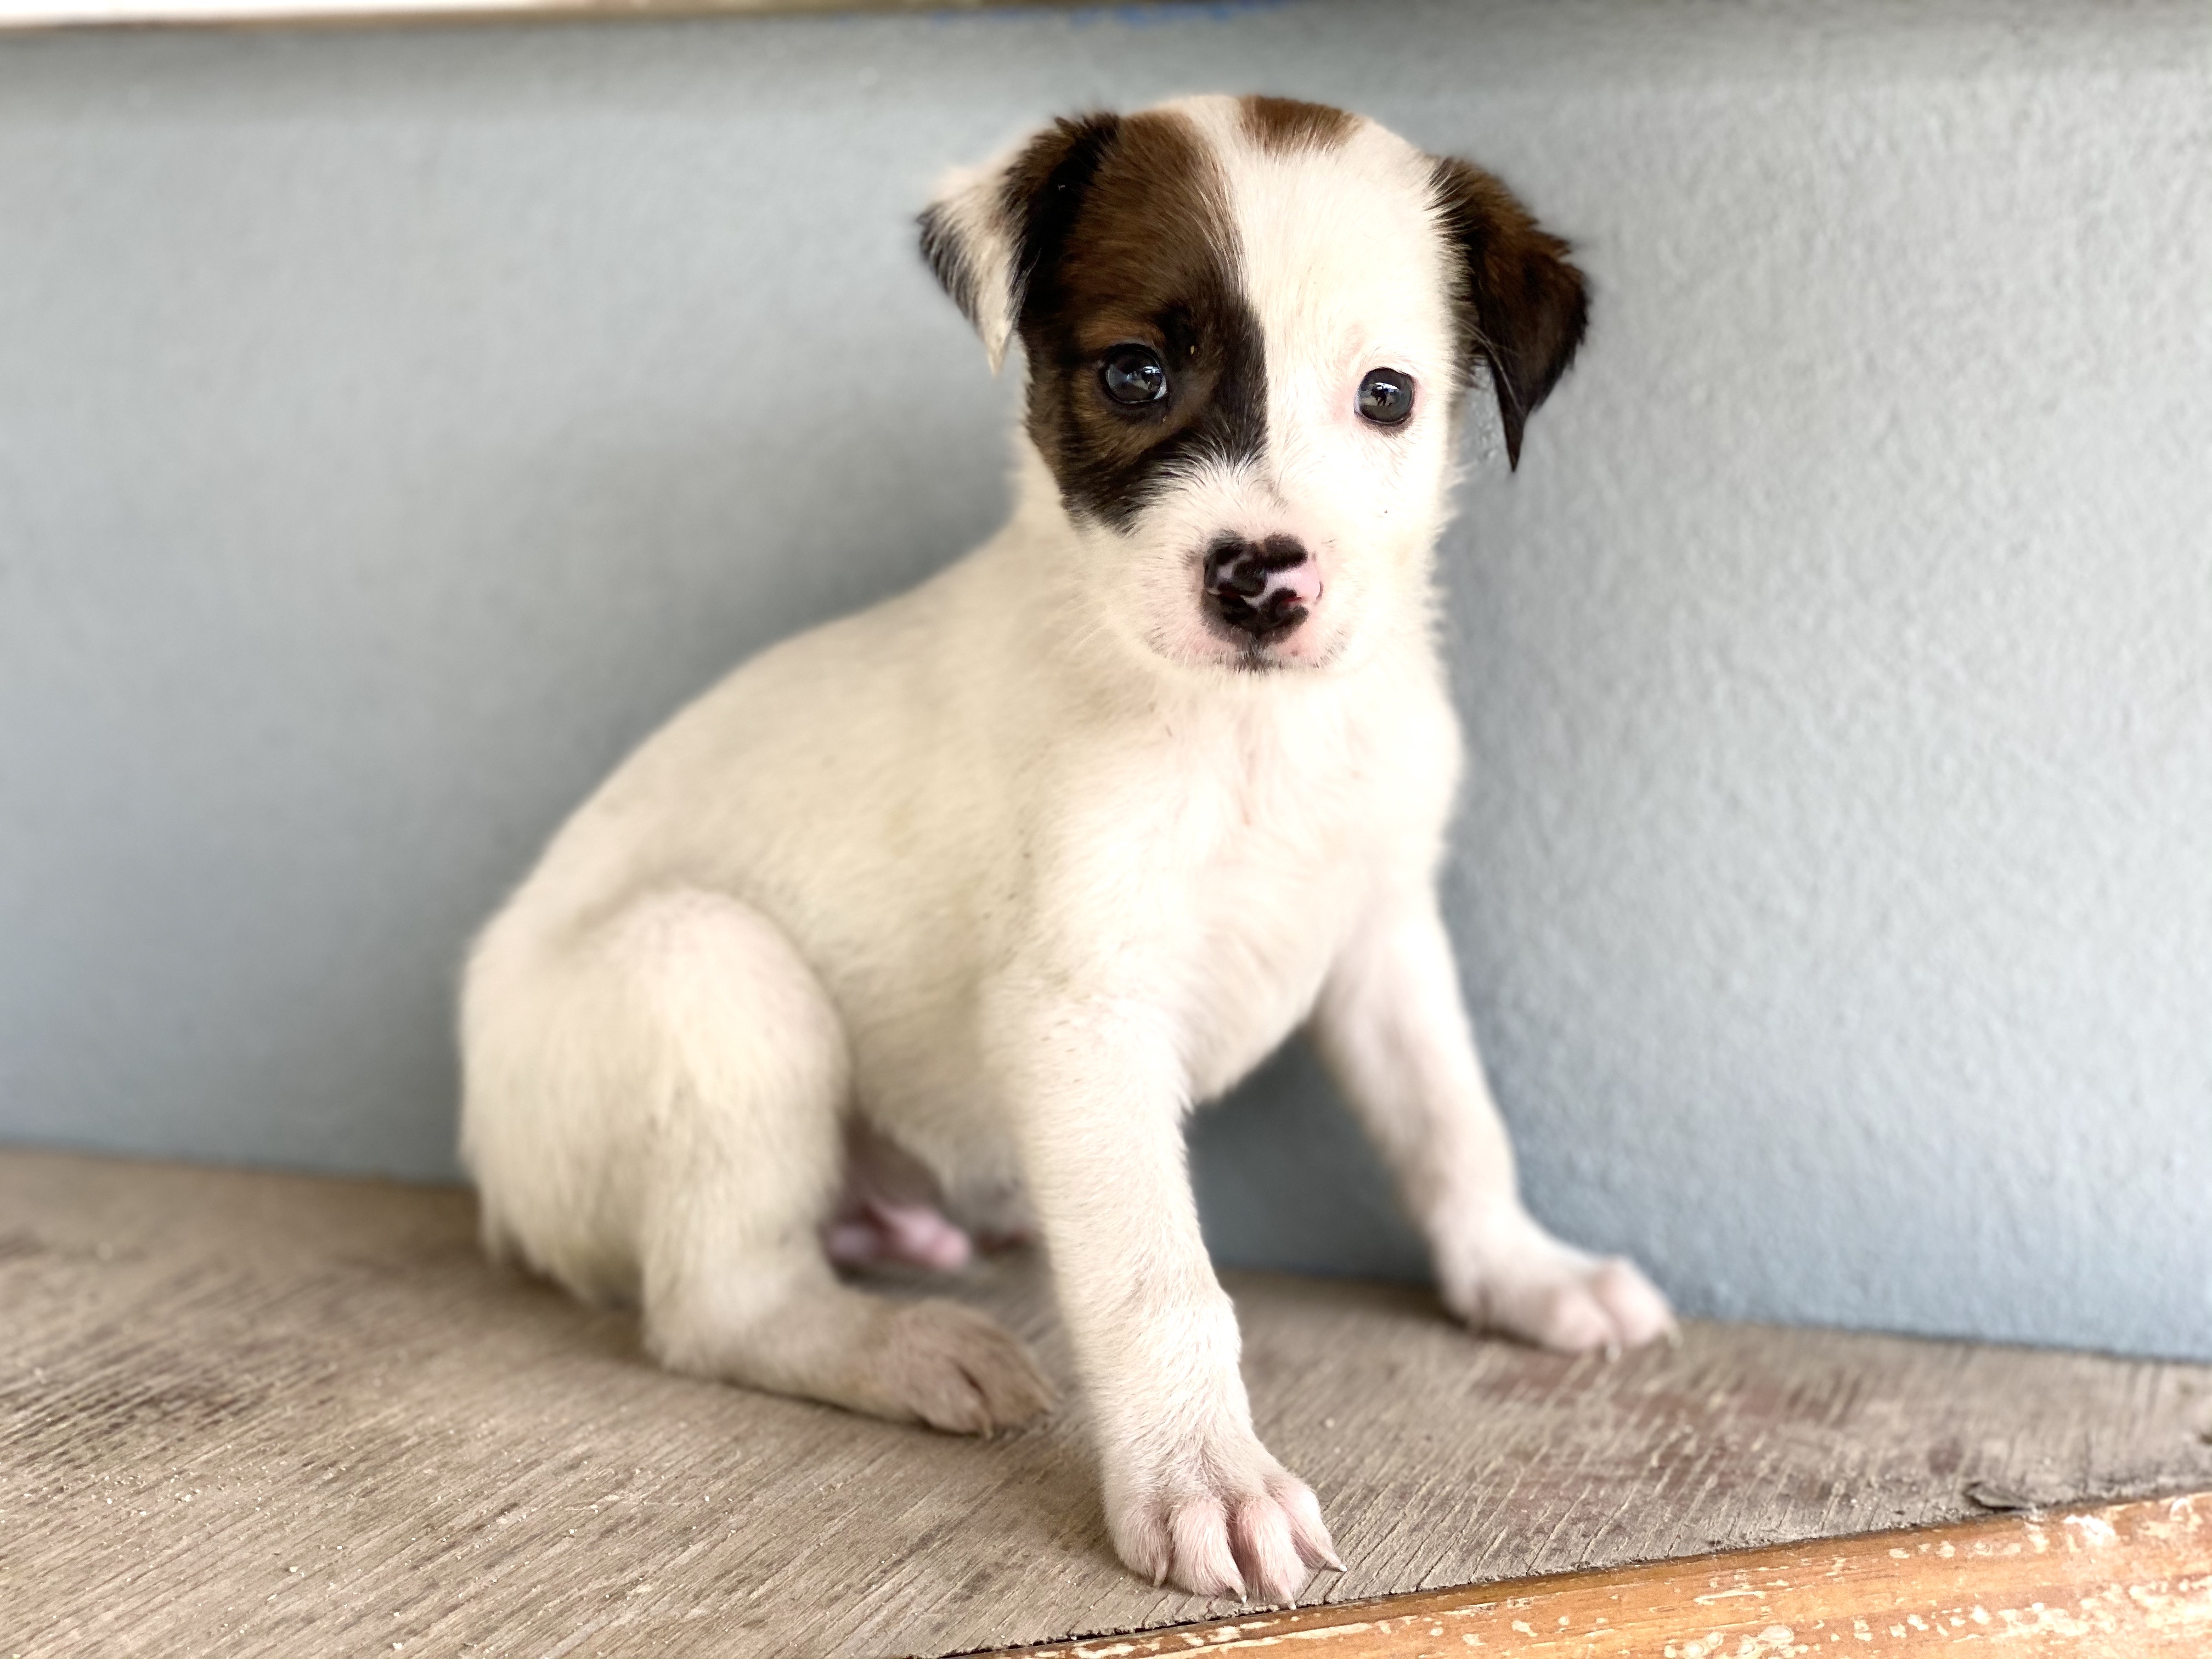 A white puppy at AARF shelter in Anguilla